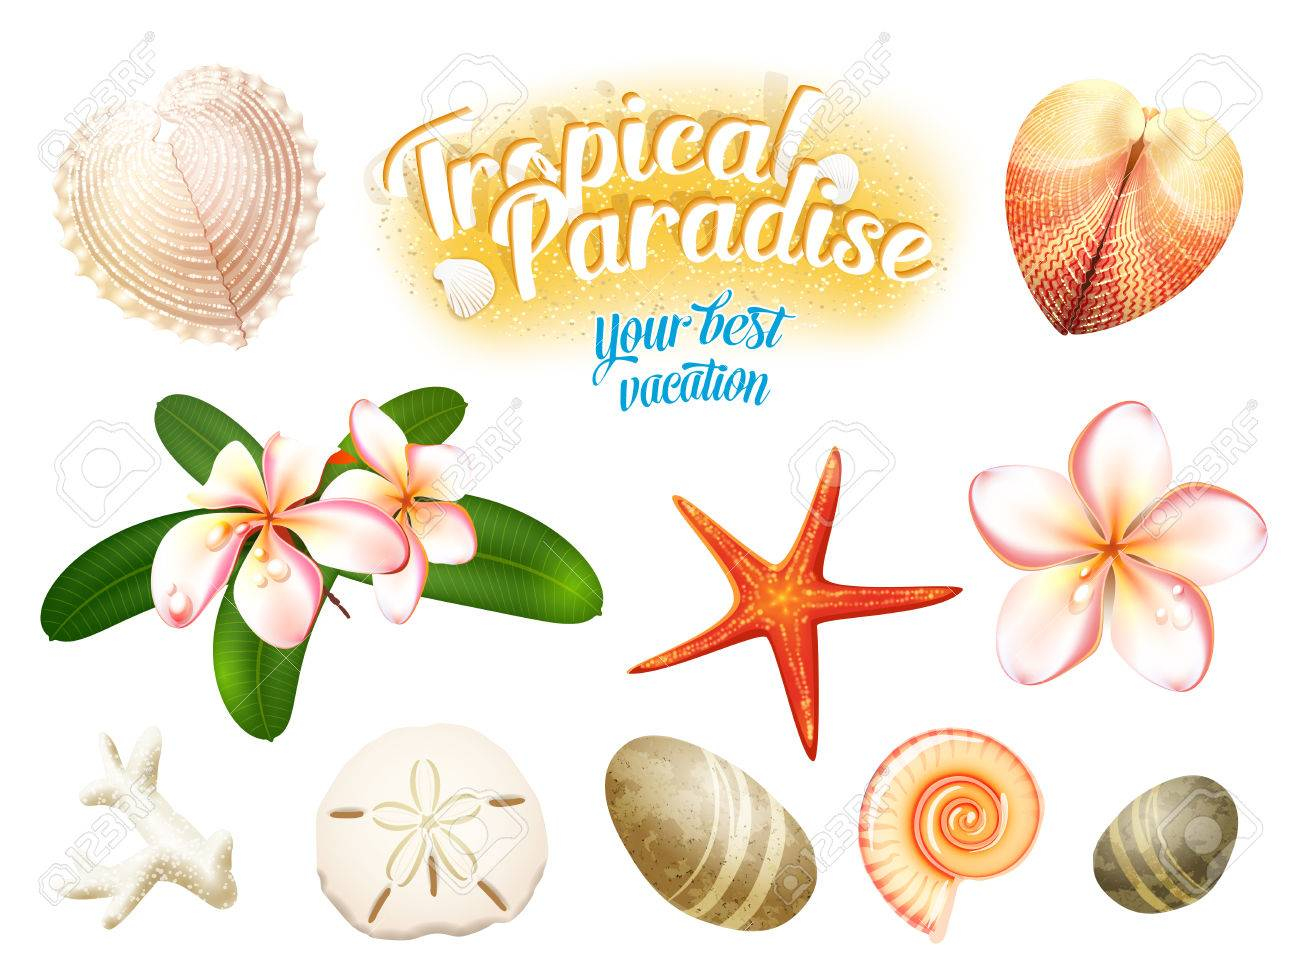 Seashells clipart 8 object. Cliparts free download best